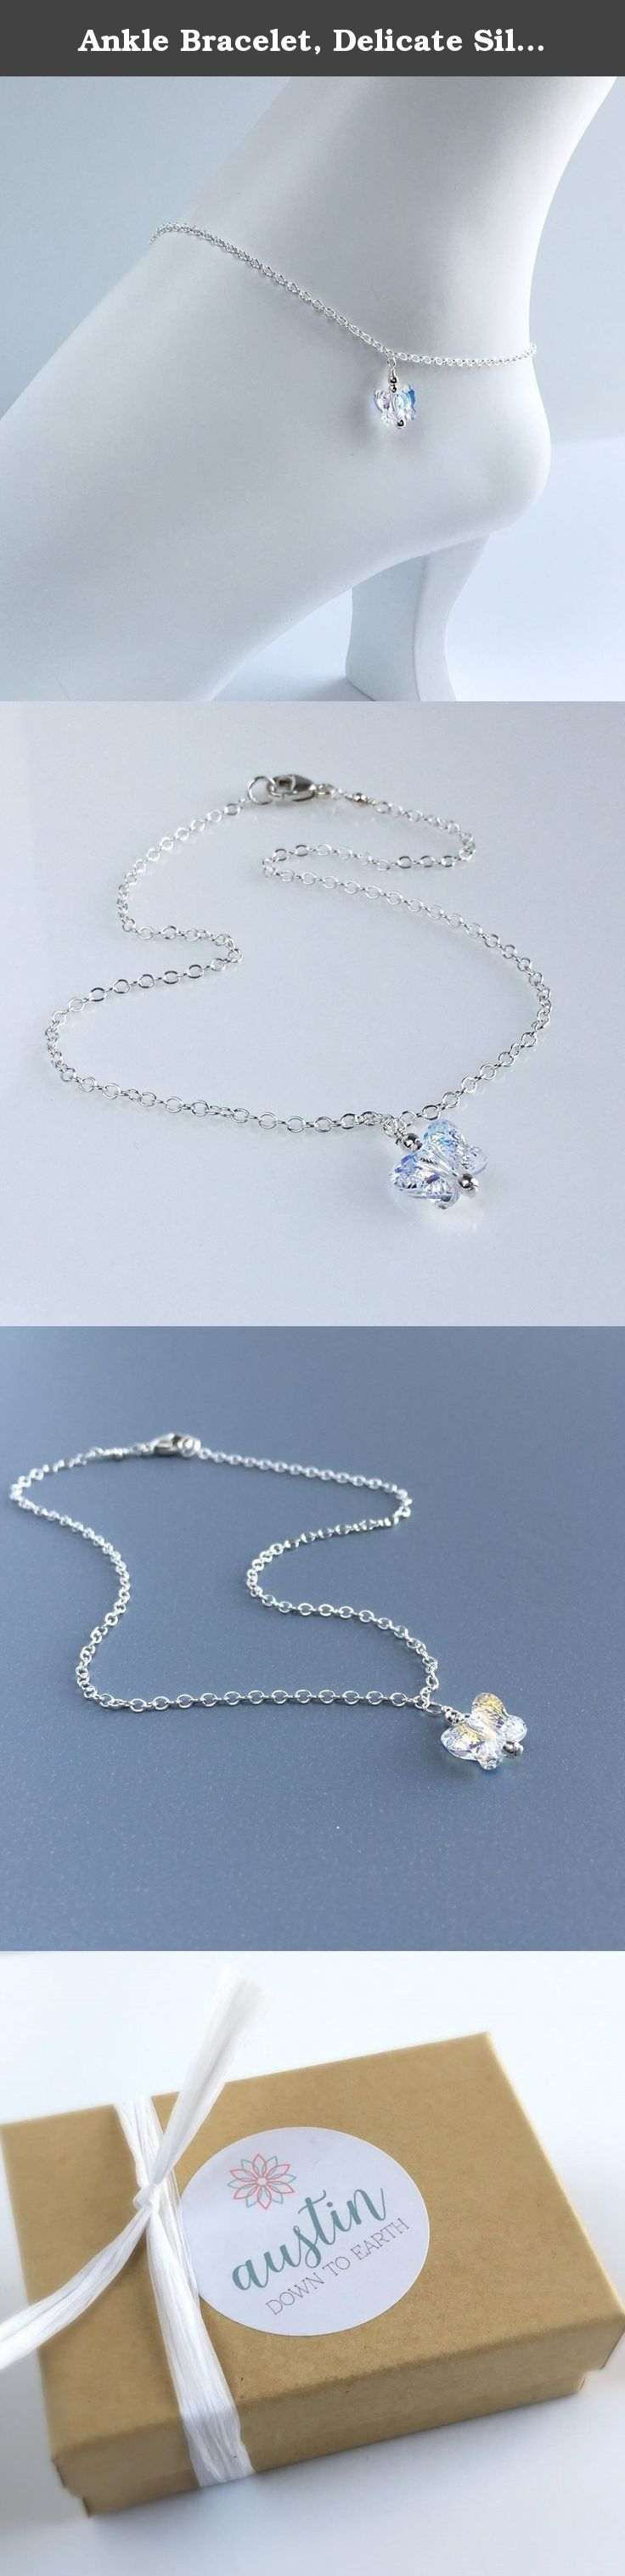 Ankle Bracelet, Delicate Silver Anklet, Swarovski Crystal Butterfly Ankle Bracelet, Butterfly Anklet, Dainty Crystal Wedding Ankle Bracelet. **Sterling Silver Ankle Bracelet with Crystal Butterfly.** This ankle bracelet is made with sterling silver chain and a small aurora borealis Swarovski crystal butterfly. This is a wonderful anklet for a special occasion or everyday wear. This is also available in 14k gold filled. This anklet comes in a box ready for gift giving.